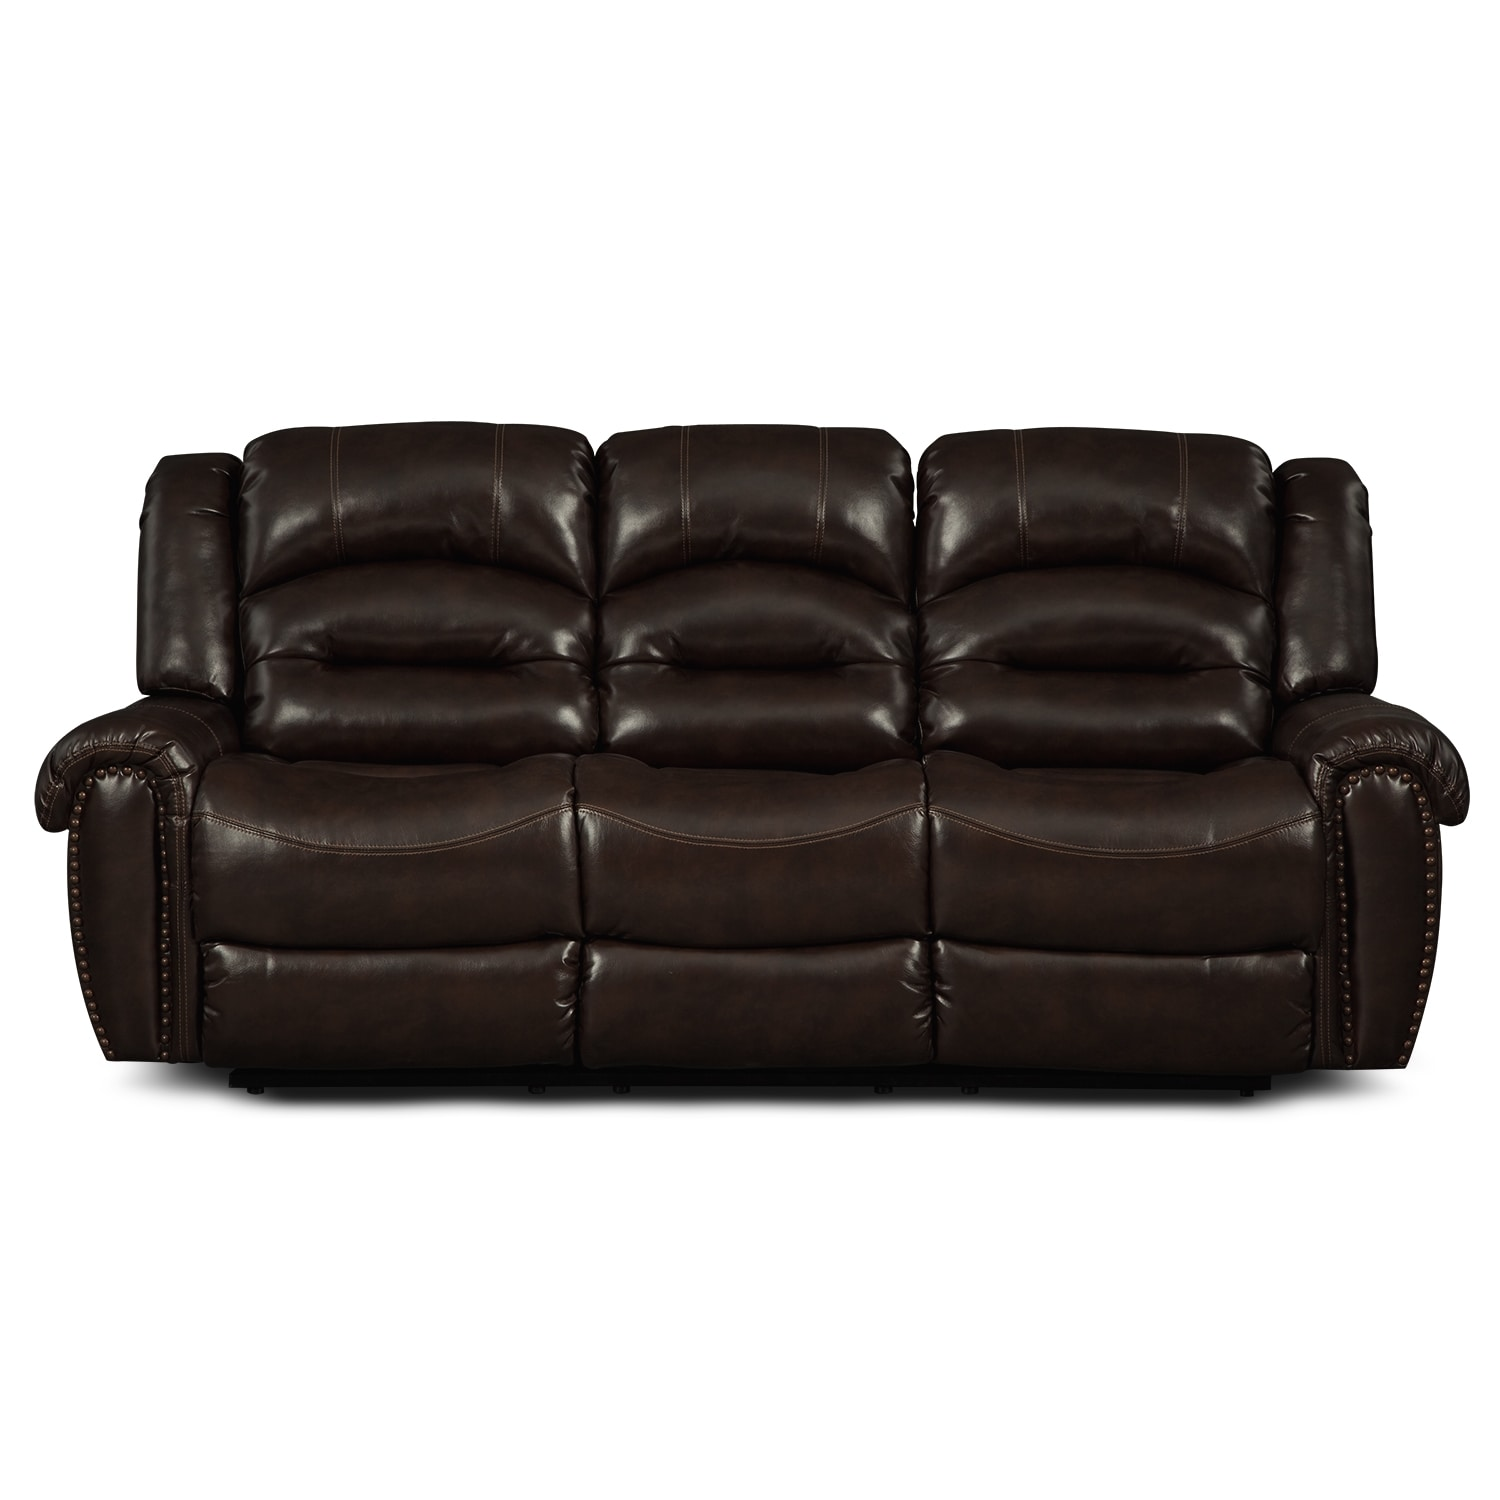 Galveston Leather Dual Reclining Sofa Value City Furniture